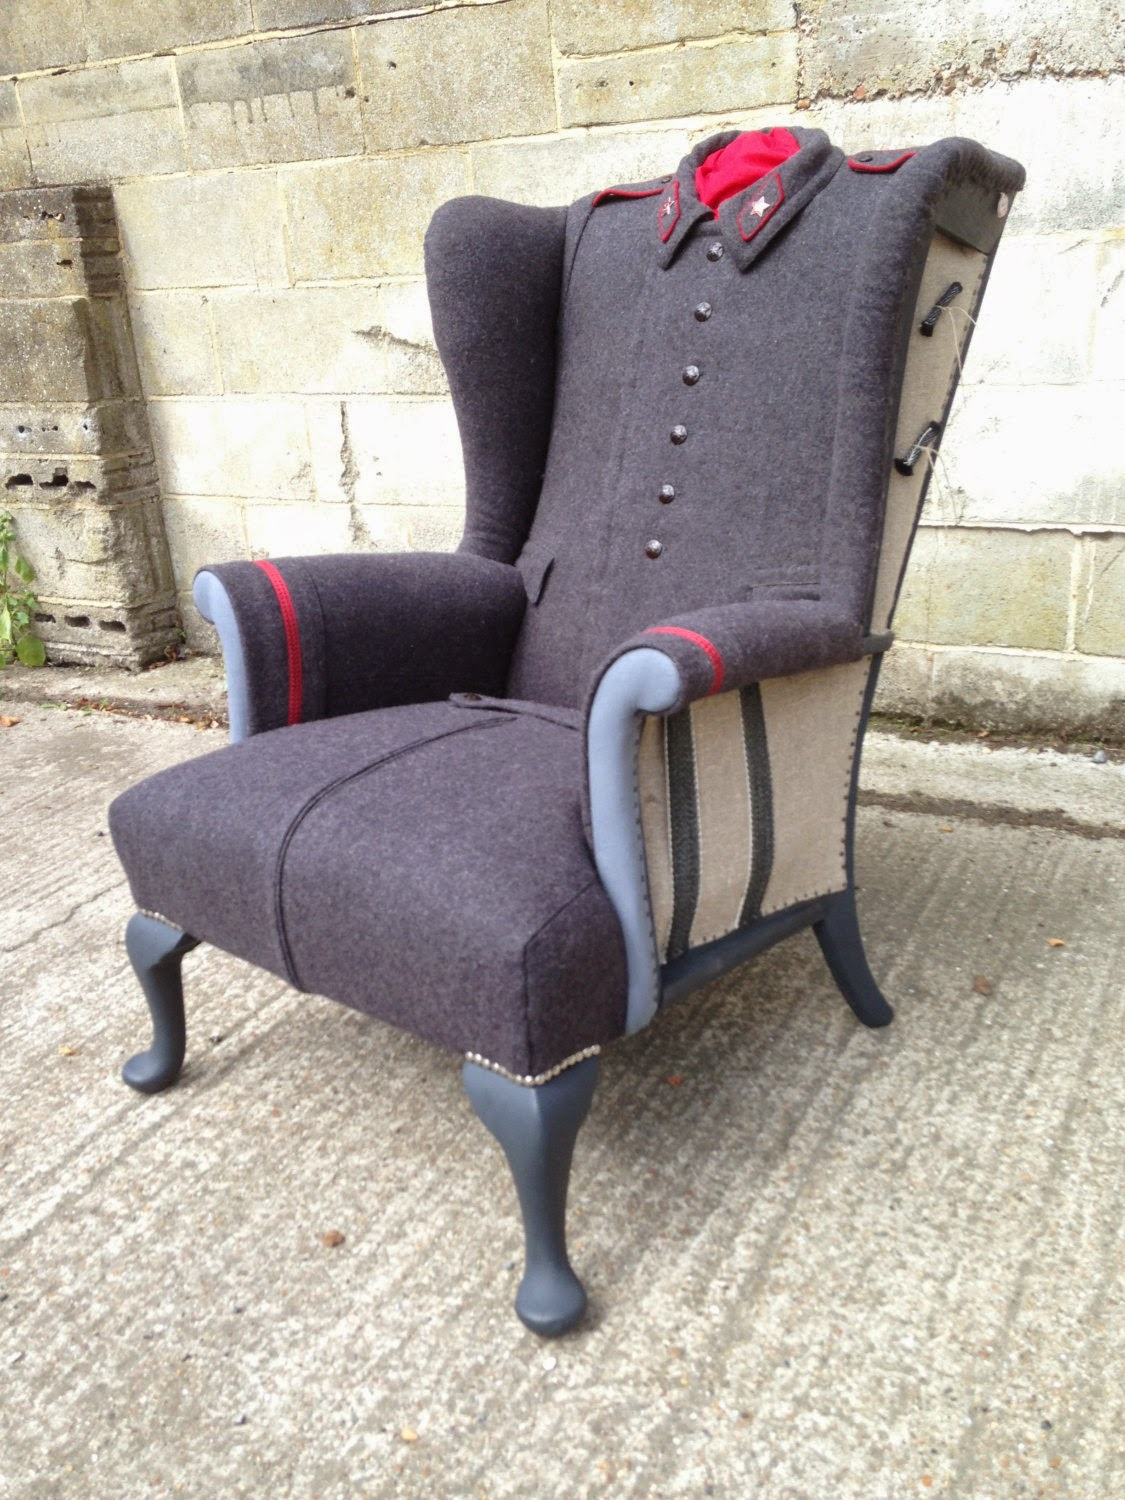 09-Soviet-Overcoat-RescuedRetroVintage-Upcycled-Vintage-Armchairs-&-Chairs-www-designstack-co